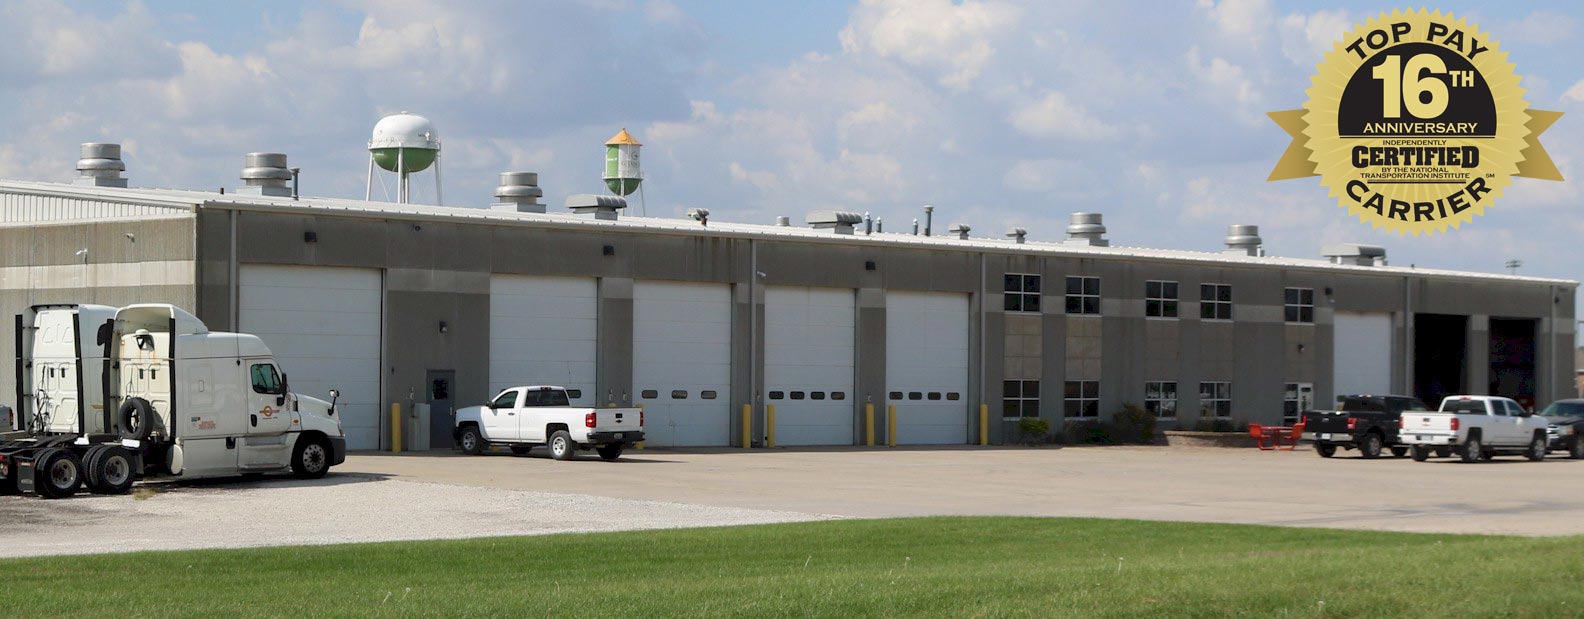 Barr-Nunn Granger, IA truck terminal building in the Des Moines, IA area showing service bays